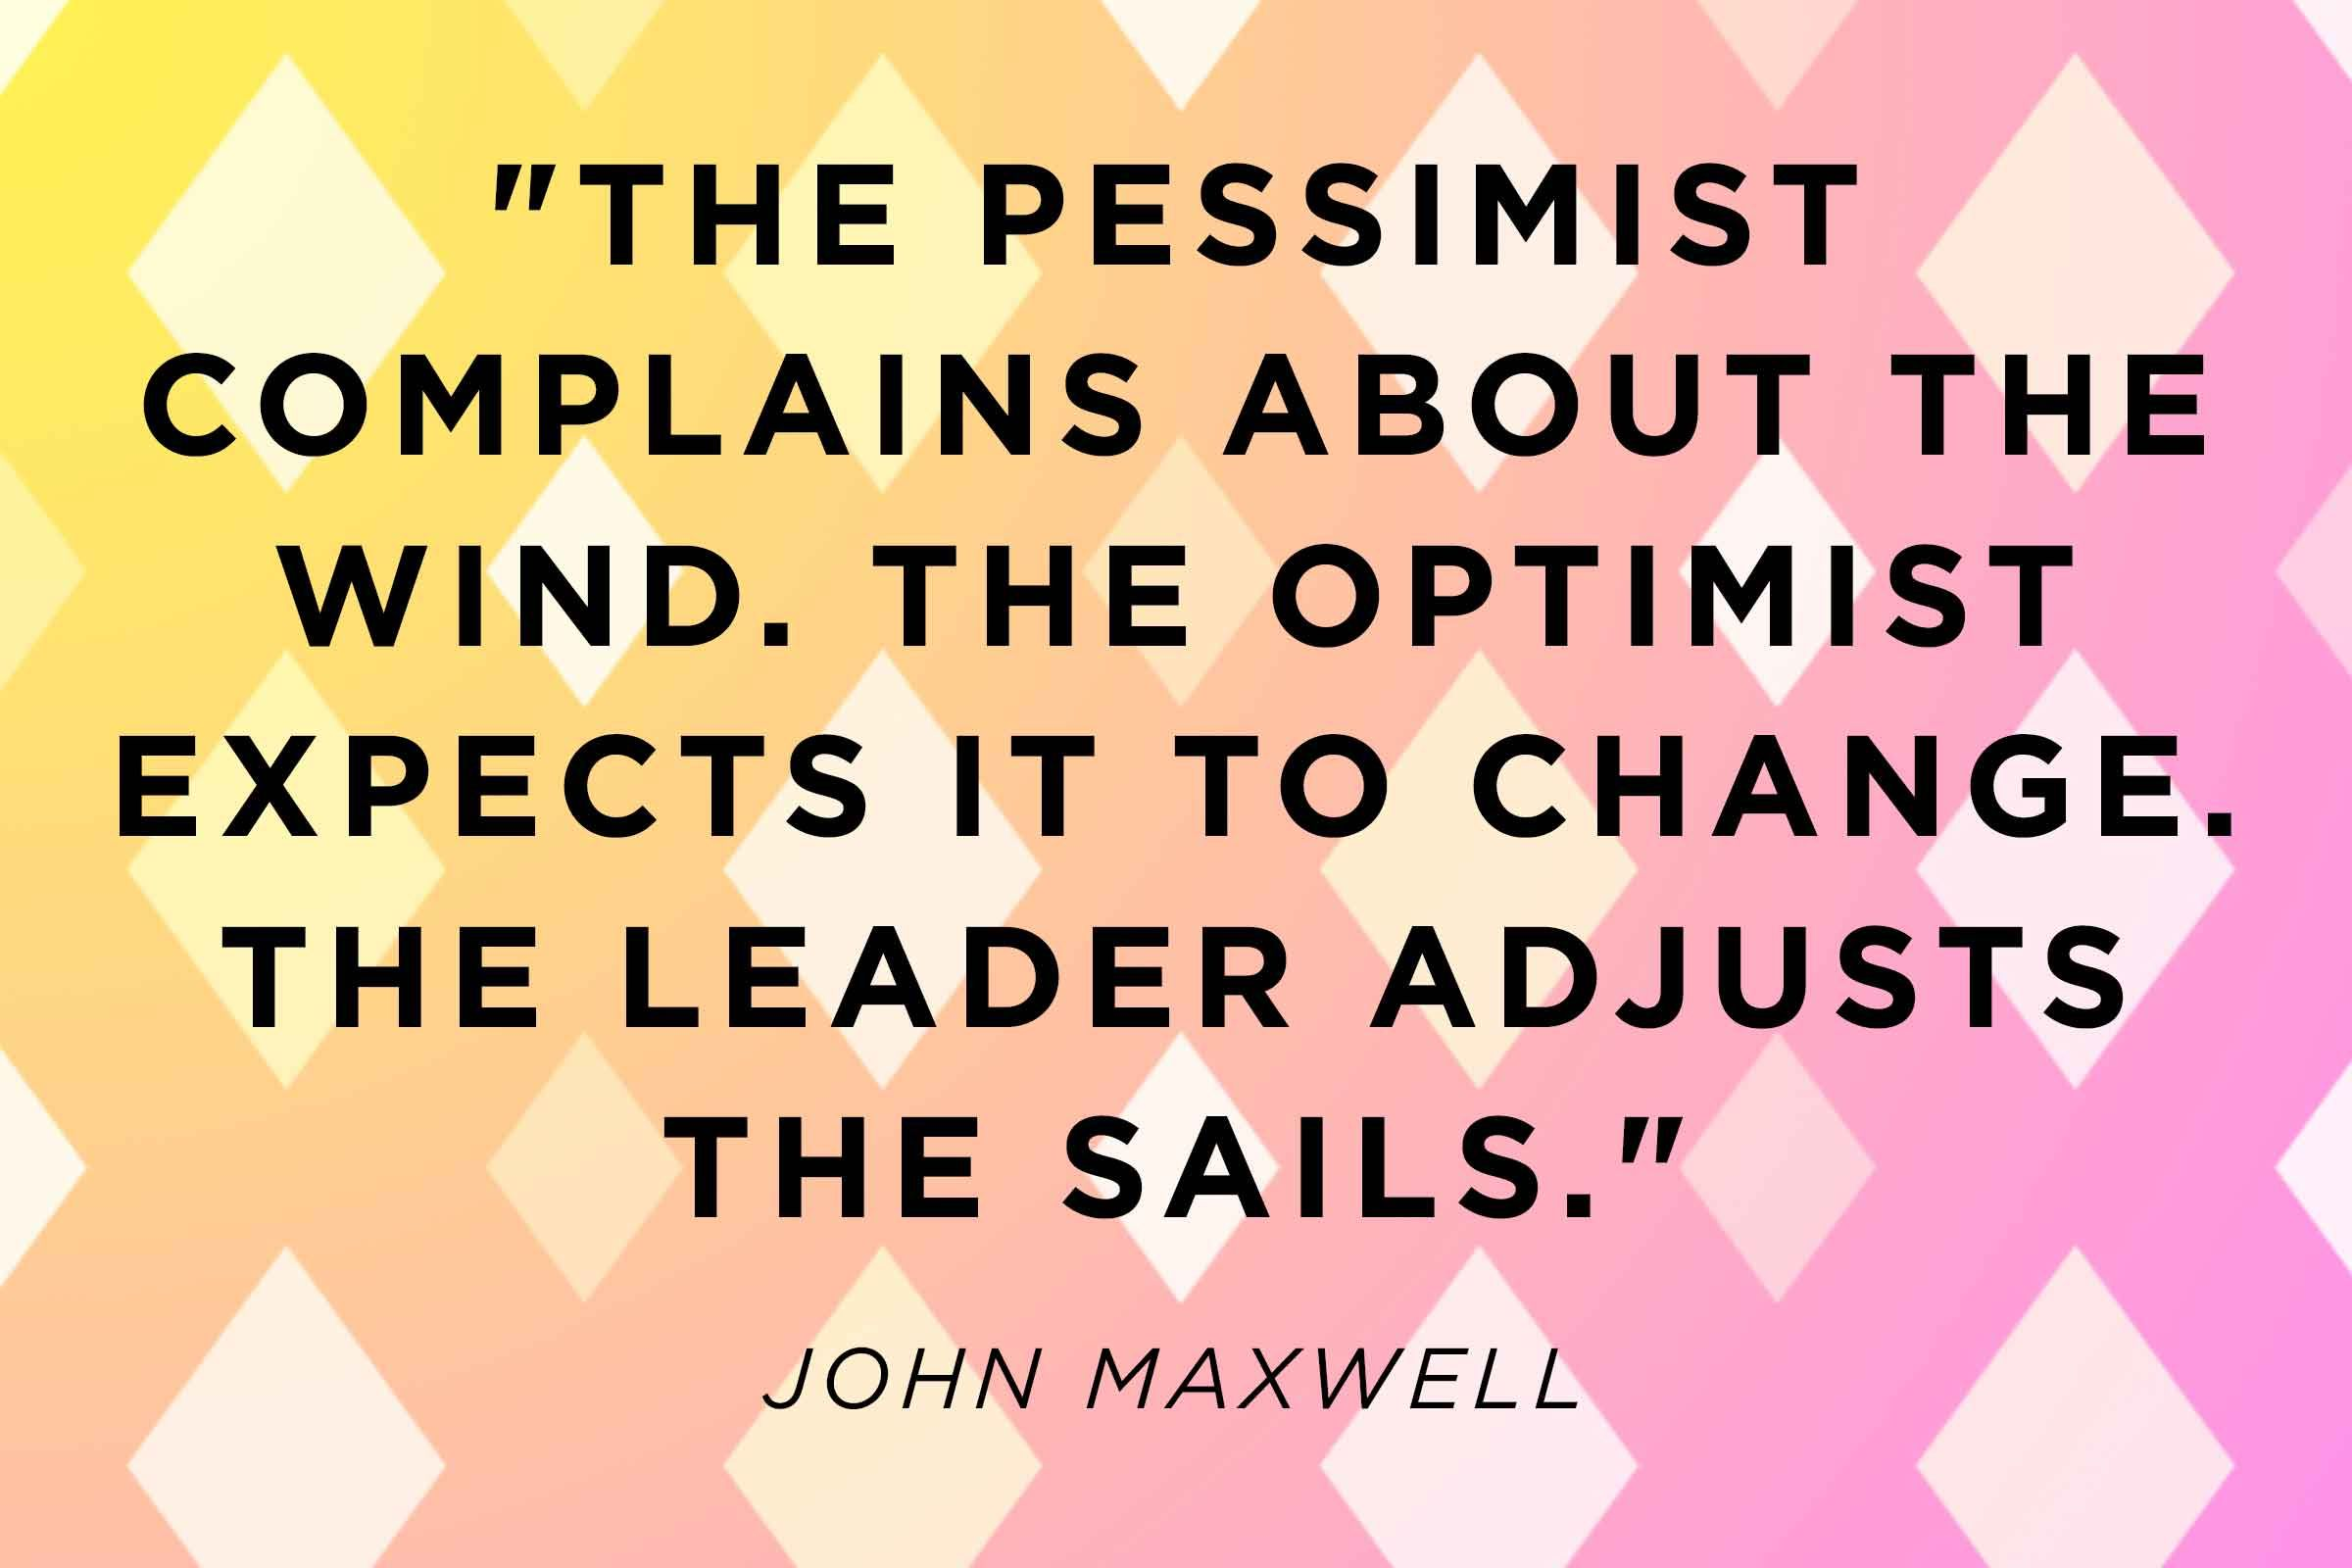 29 Positive Quotes To Make You See The Glass Half Full